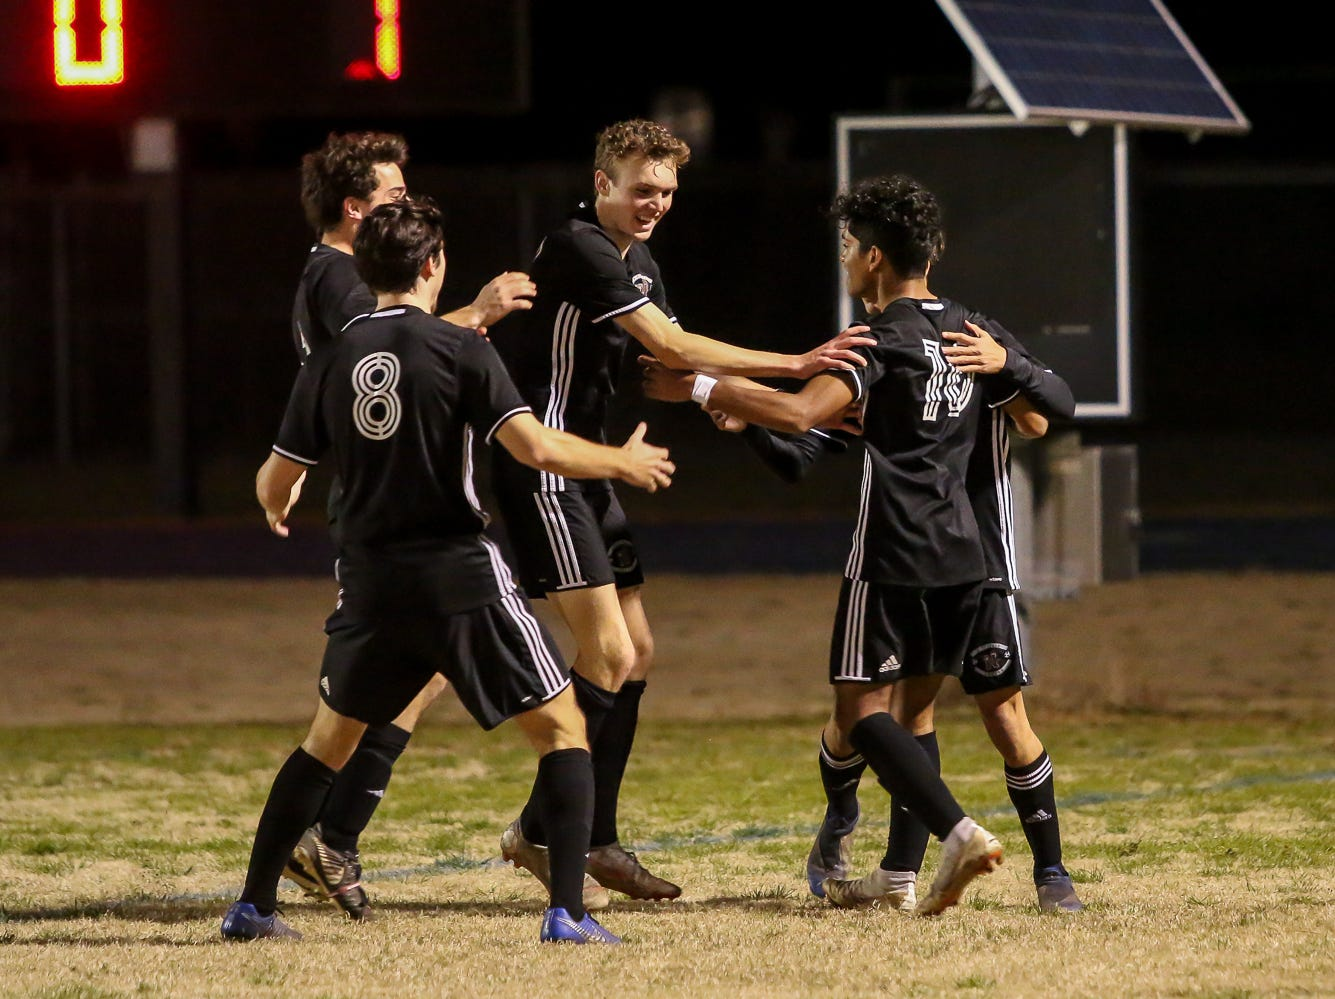 After scoring a goal against Navarre, Niceville's Liam Etan (10) is congratulated by his teammates in the District 1-4A championship game at Washington High School on Friday, February 1, 2019. For the second straight year, Niceville shut-out Navarre to win the championship. Last year, the score was 6-0 and this year it was 7-0.